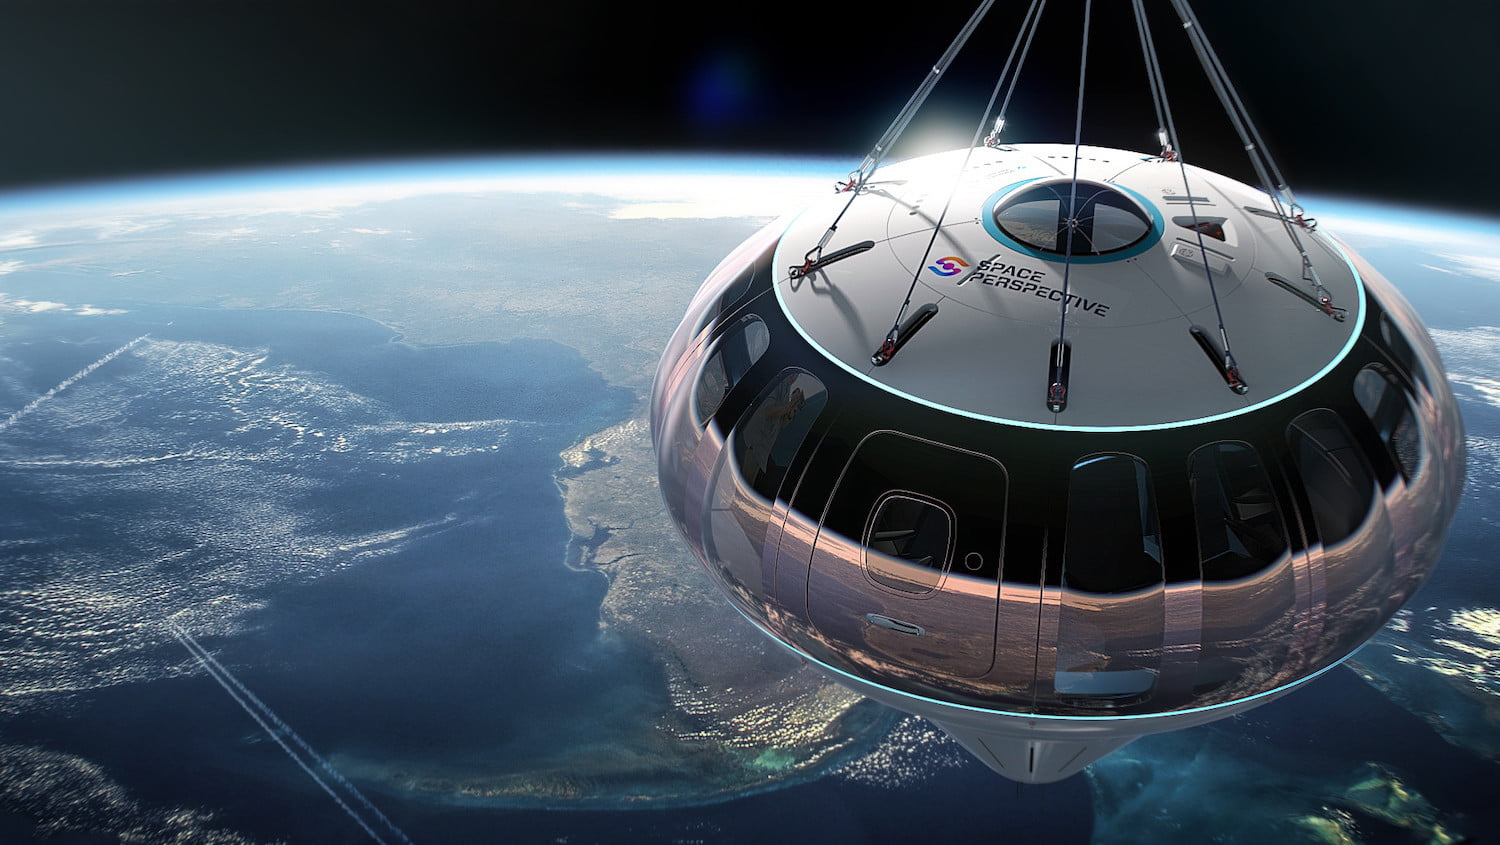 This luxurious capsule is competing for area tourism prospects